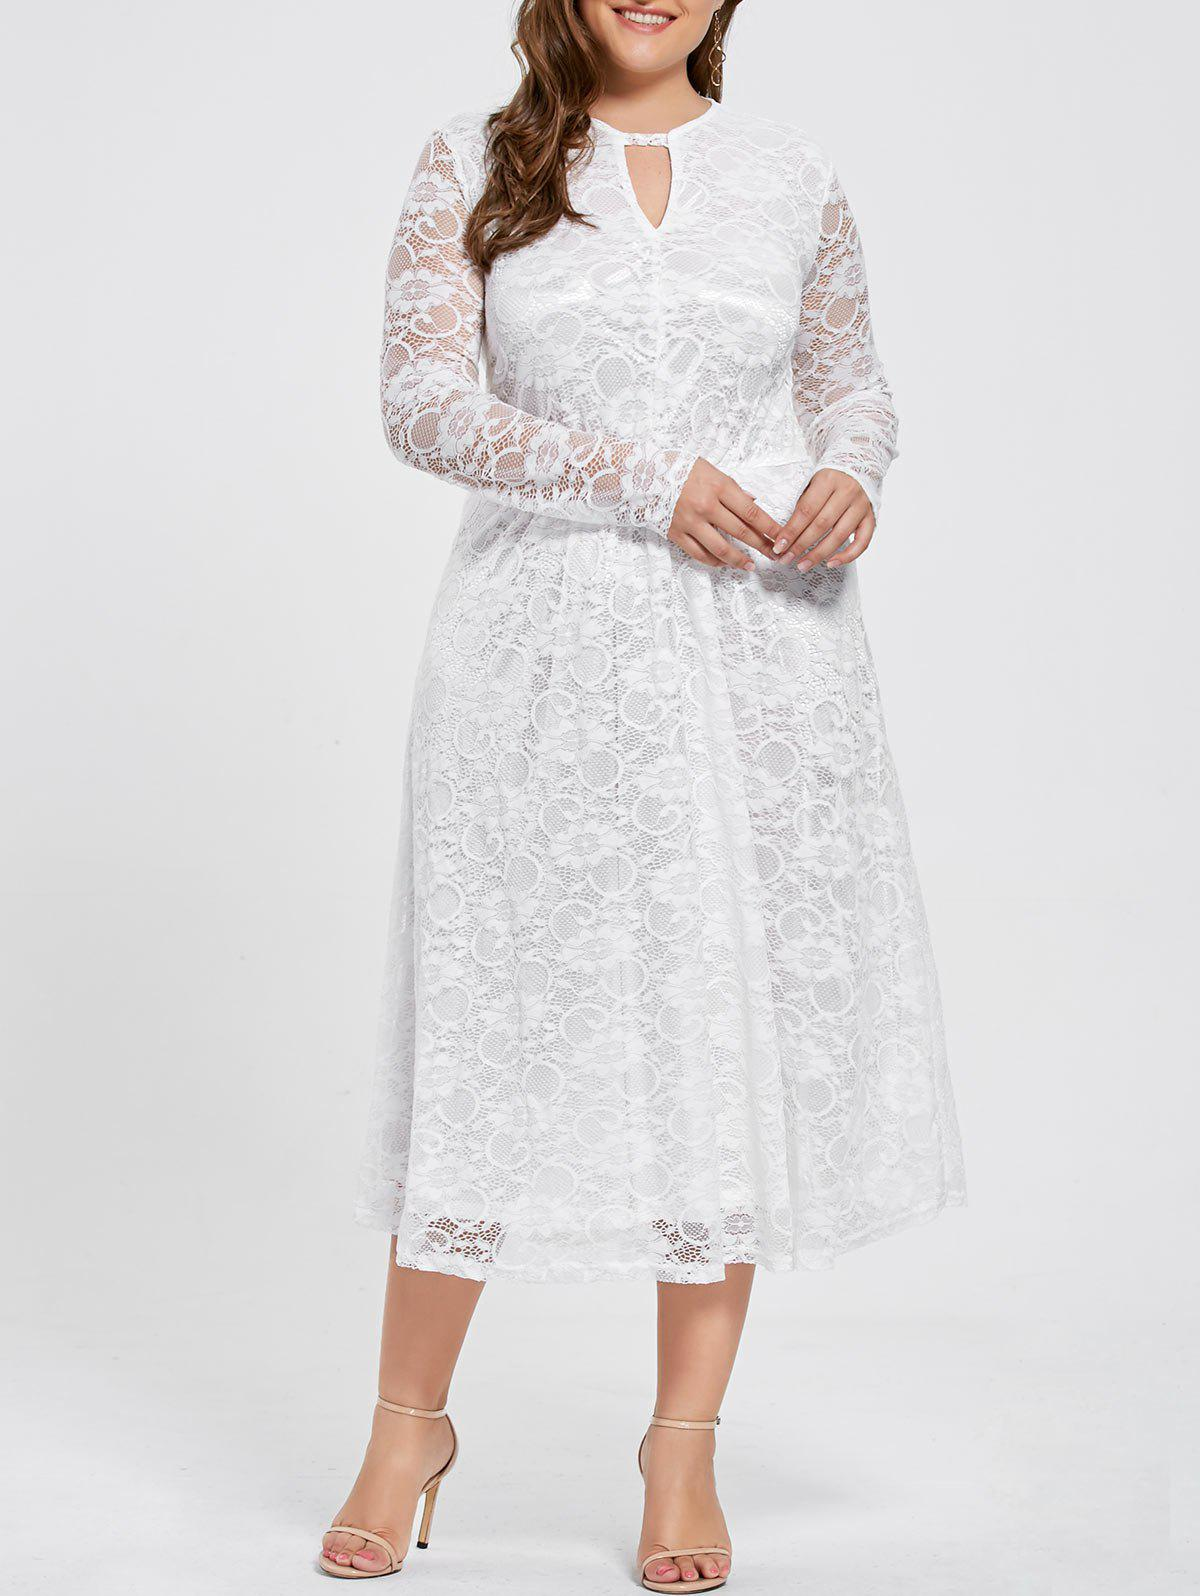 Long Sleeve Plus Size Keyhole Lace DressWOMEN<br><br>Size: 3XL; Color: WHITE; Style: Brief; Material: Polyester; Silhouette: Sheath; Dresses Length: Mid-Calf; Neckline: Keyhole Neck; Sleeve Length: Long Sleeves; Embellishment: Lace; Pattern Type: Solid; With Belt: No; Season: Fall,Spring; Weight: 0.4600kg; Package Contents: 1 x Dress;